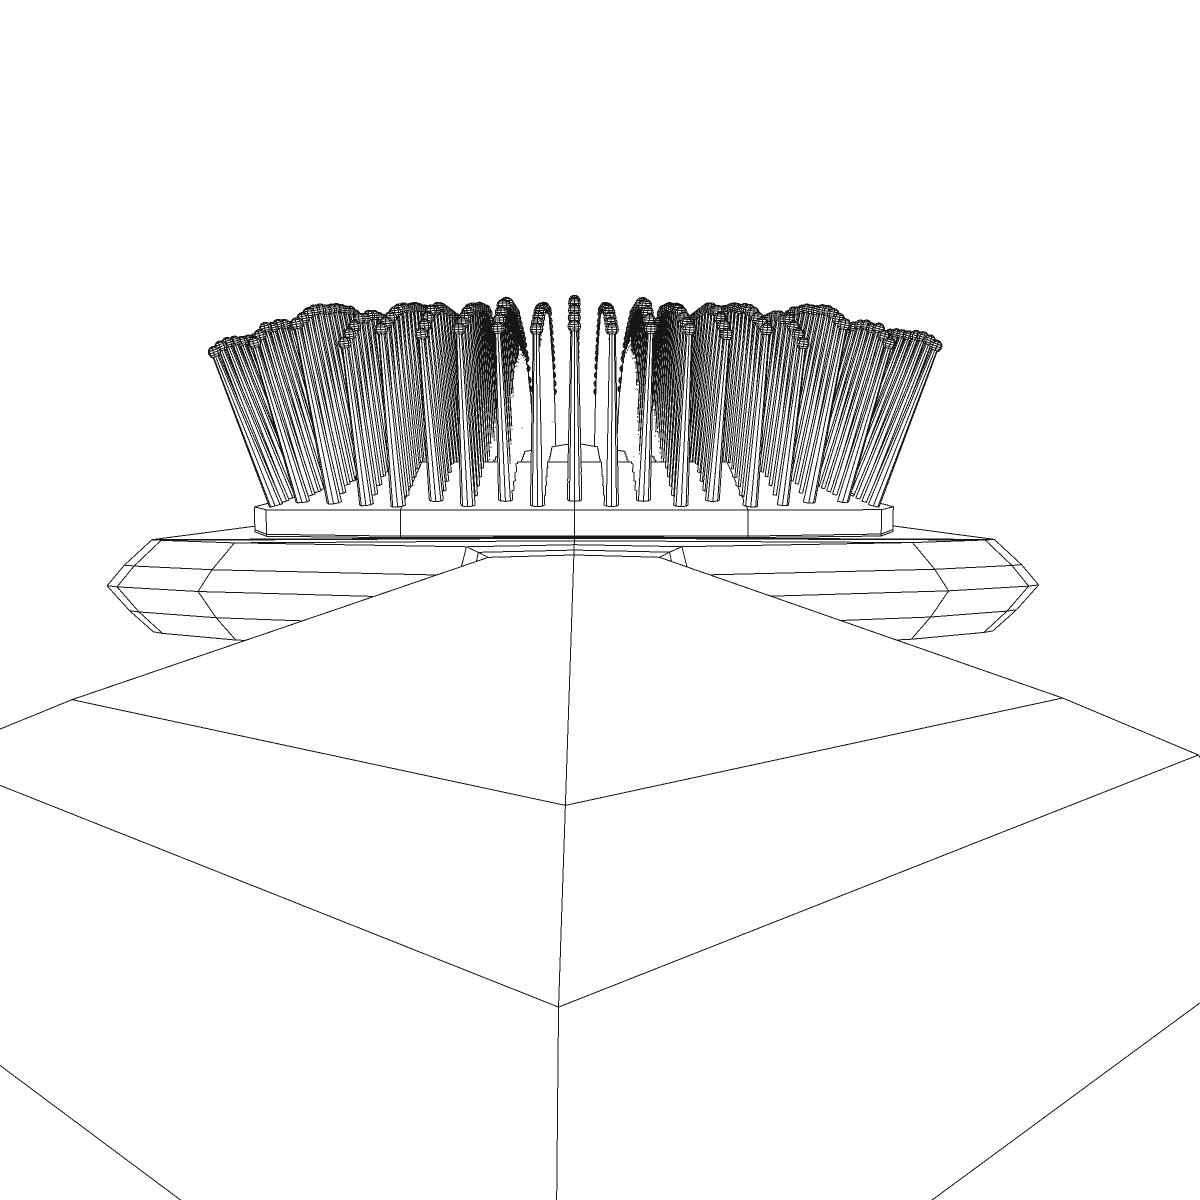 comb 3d model 3ds max fbx ma mb obj 158305